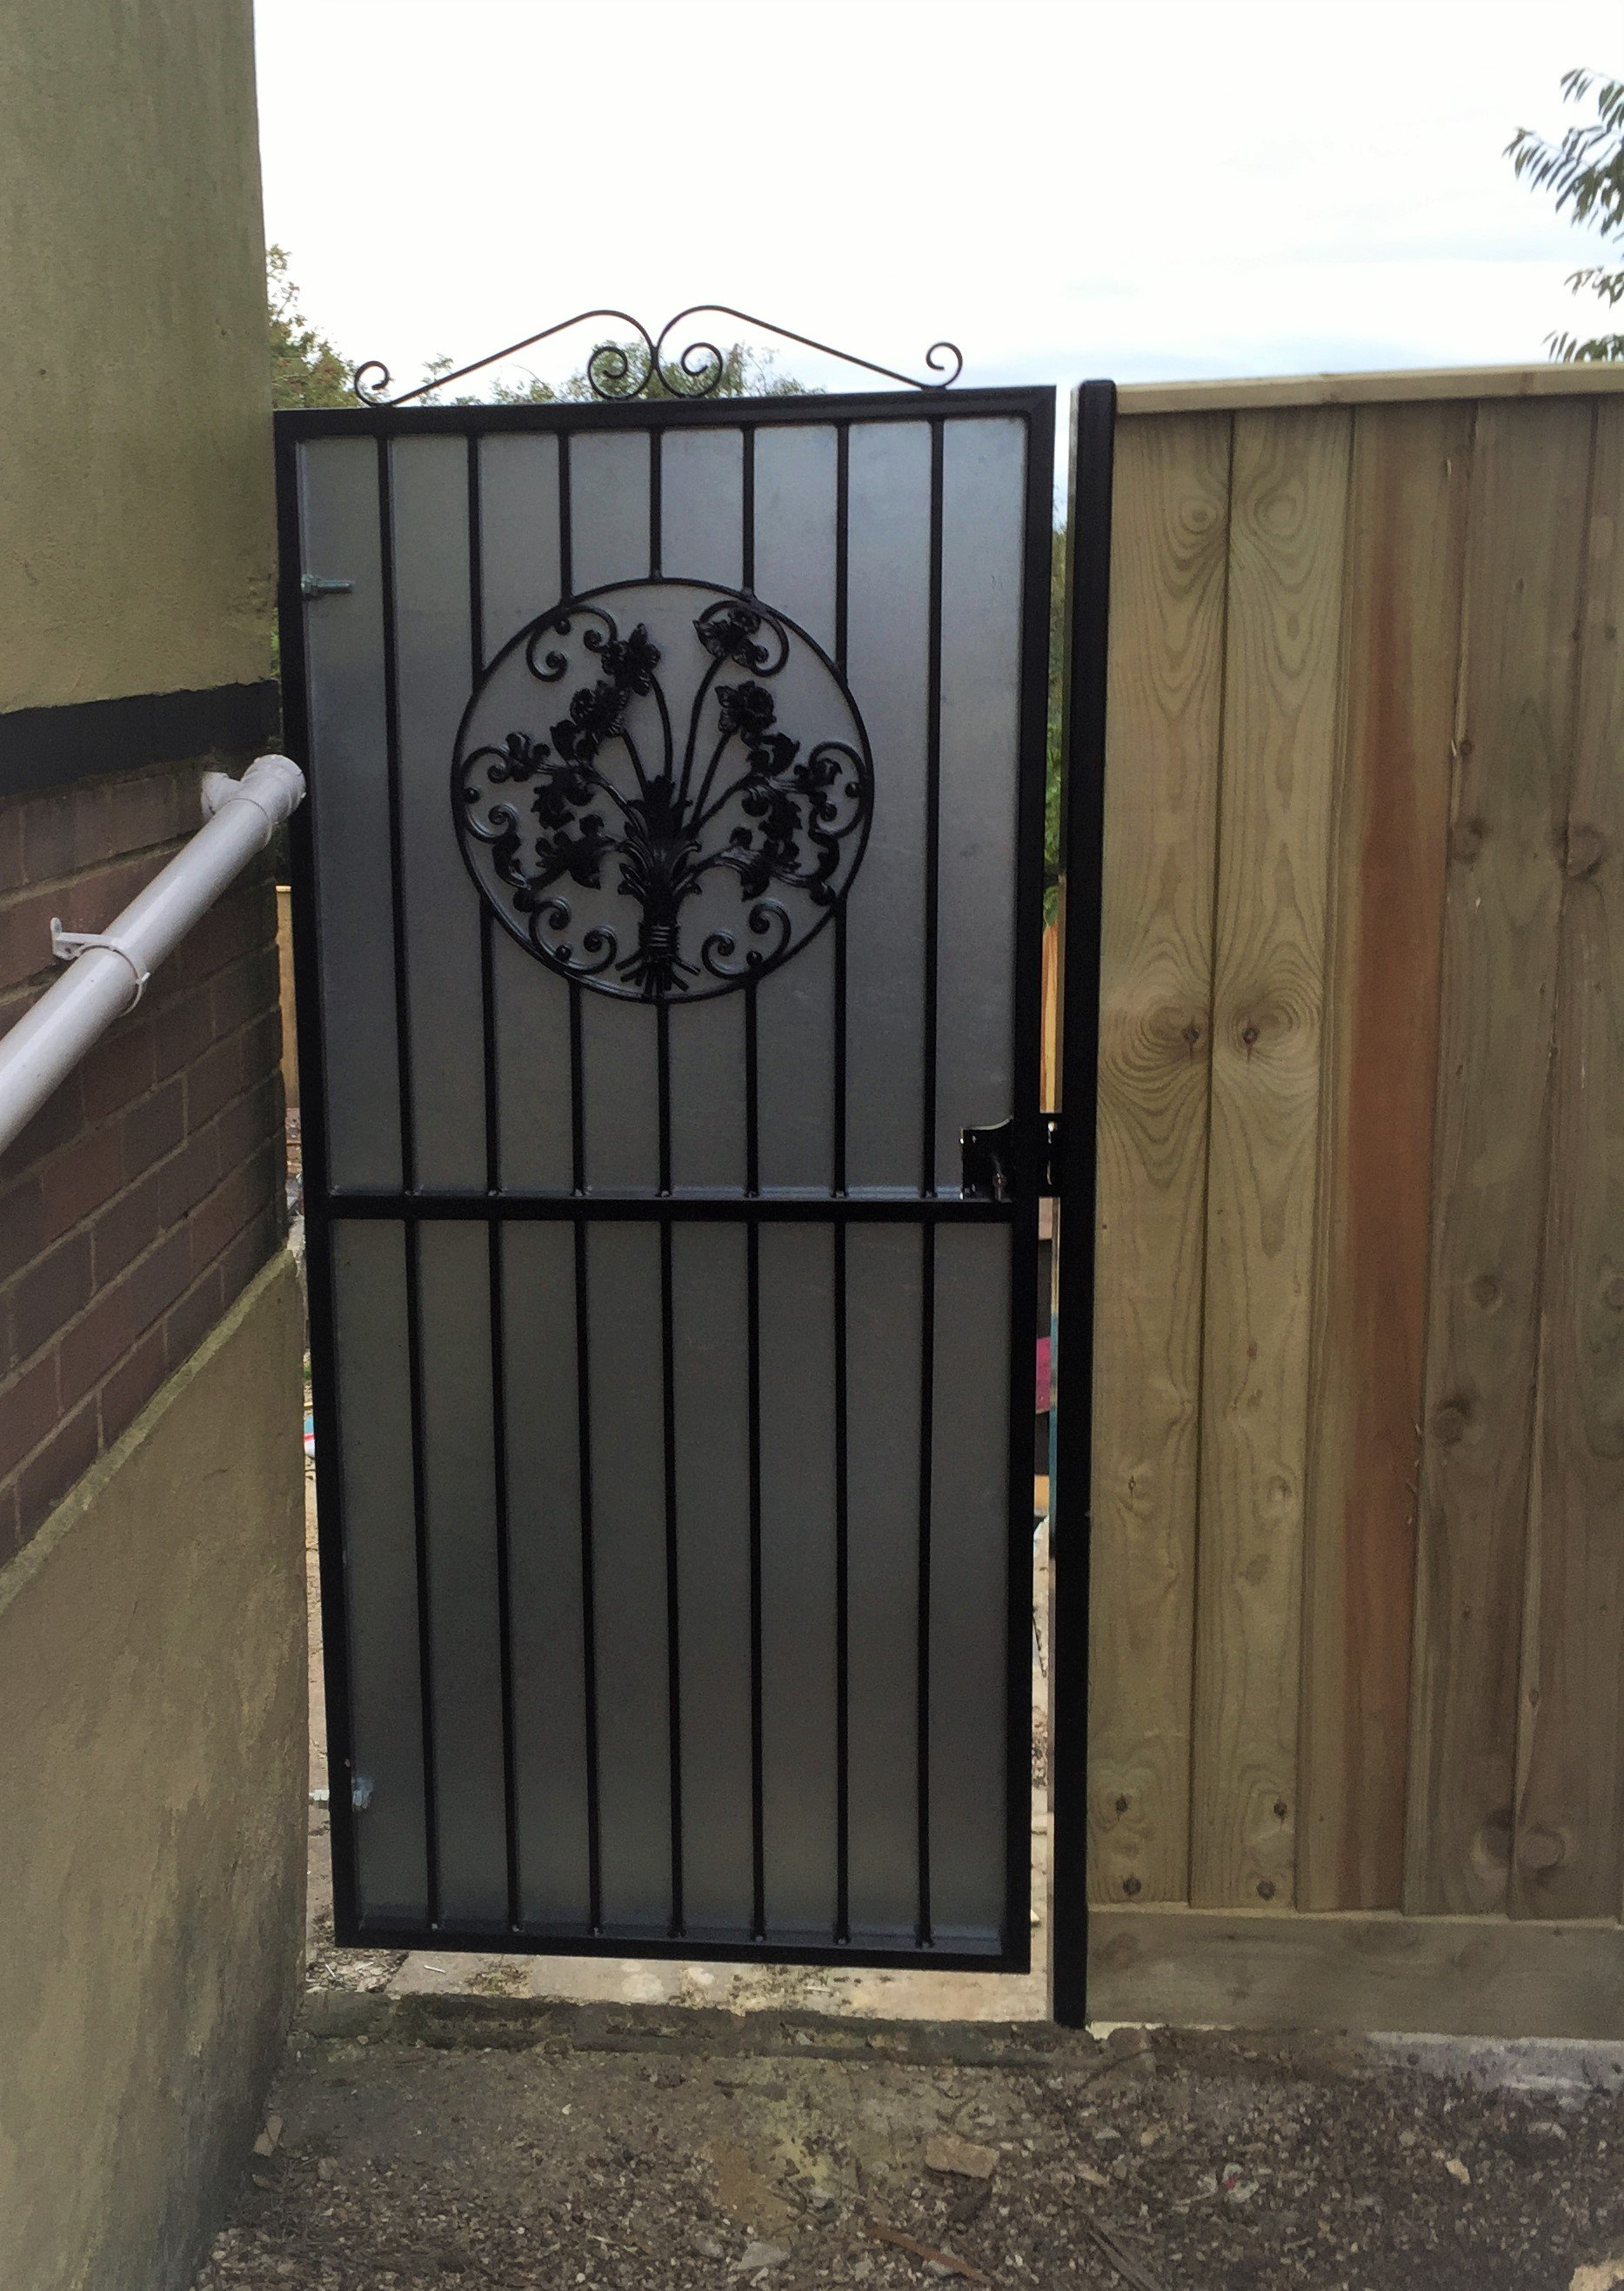 The same gate with a sheet background to block the view of the back garden